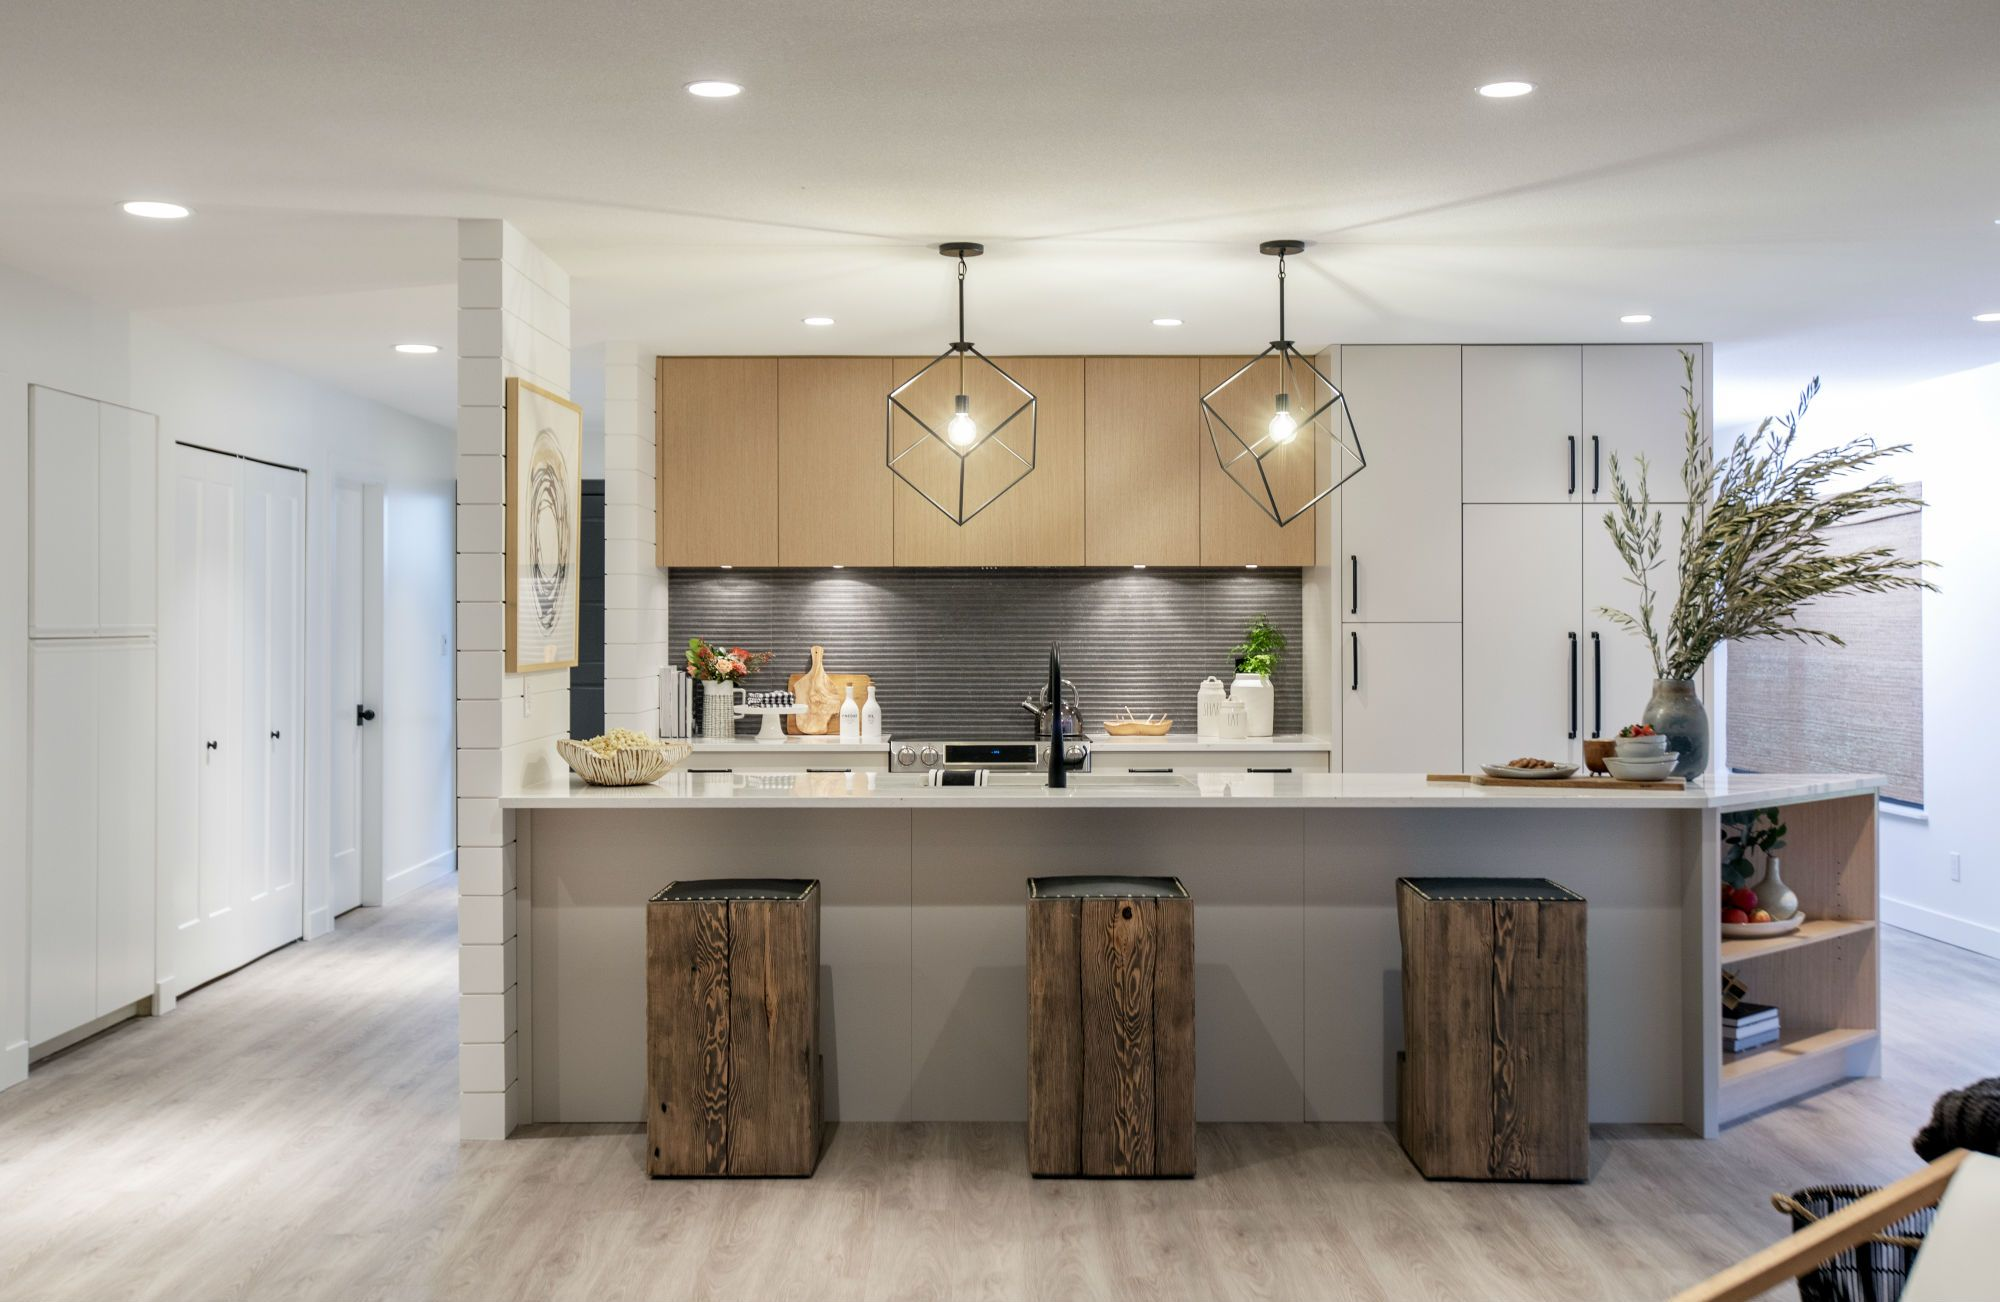 2020 decorating trends revealed in worst to first in 2020 kitchen design modern kitchen on kitchen interior trend 2020 id=58903